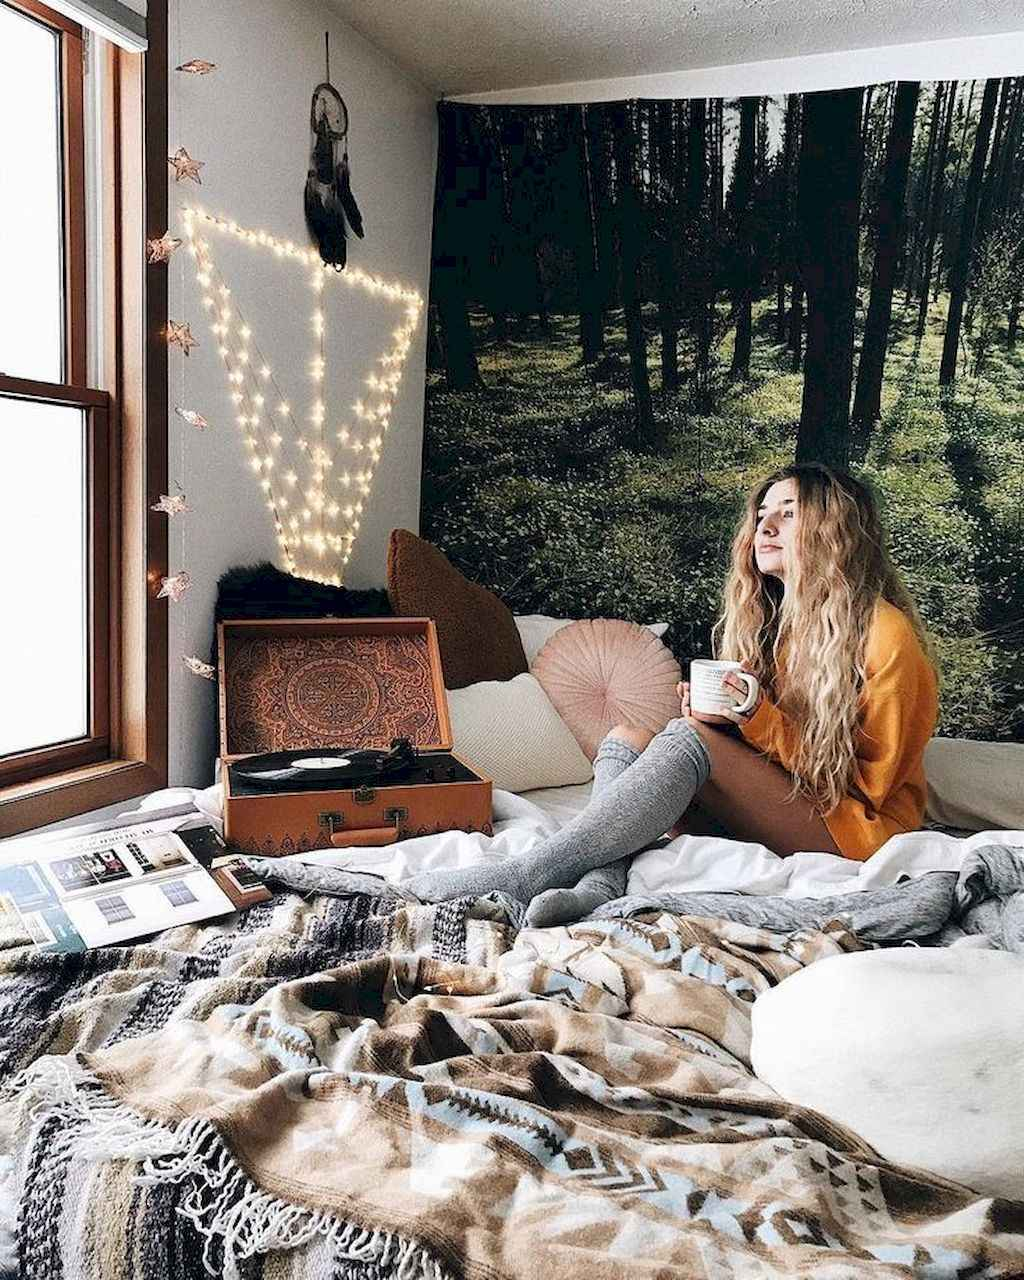 Clever college apartment decorating ideas on a budget (8)